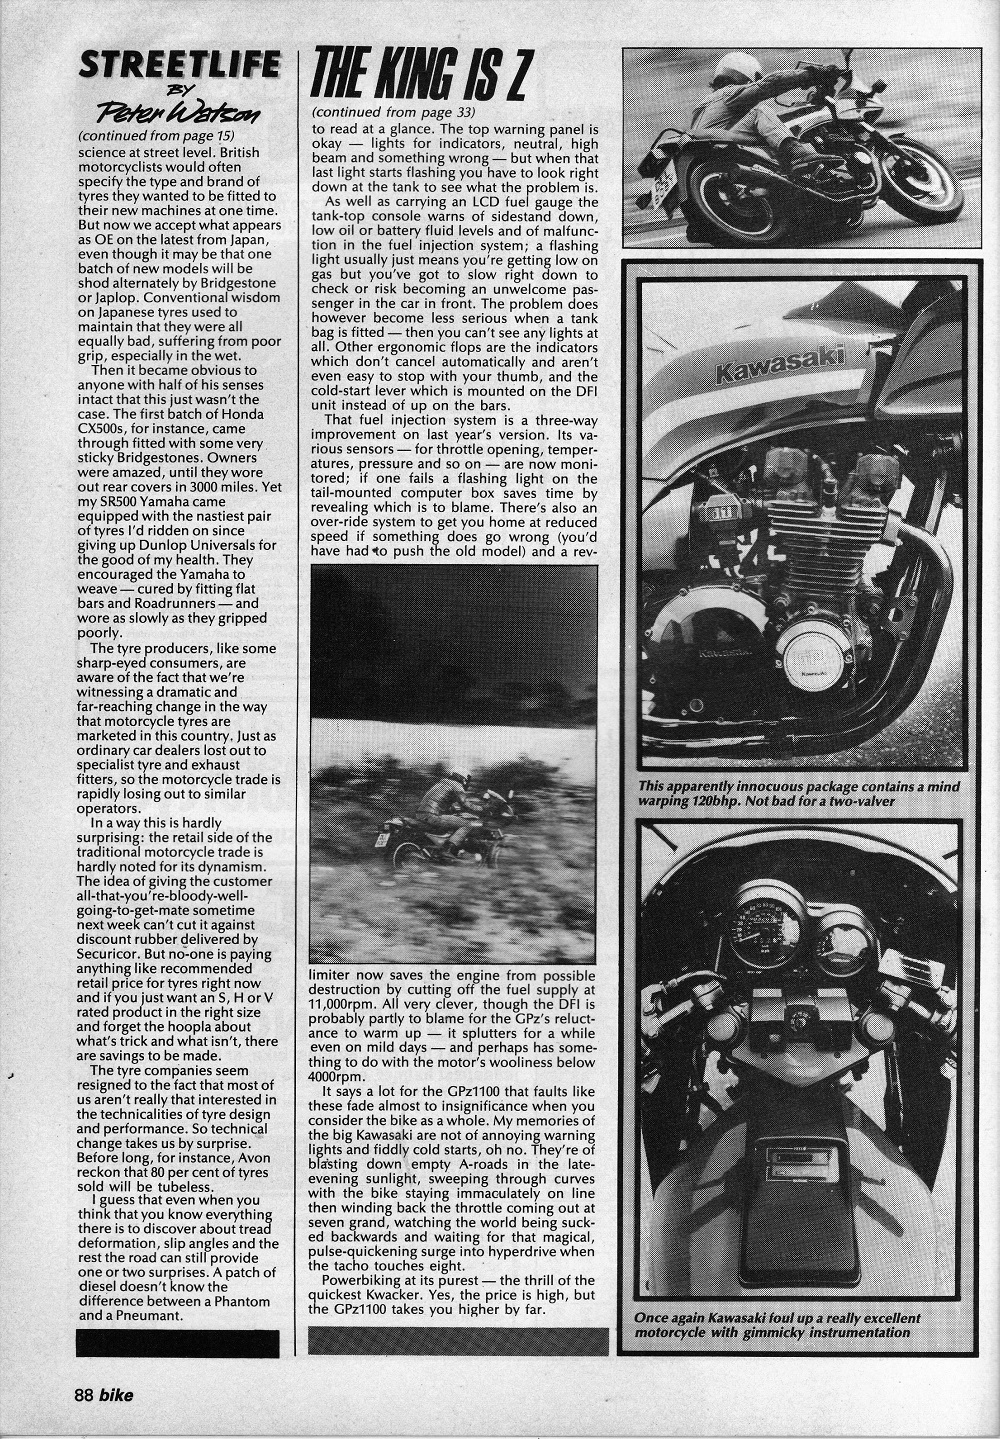 1983 Kawasaki GPZ 1100 road test. 7.jpg